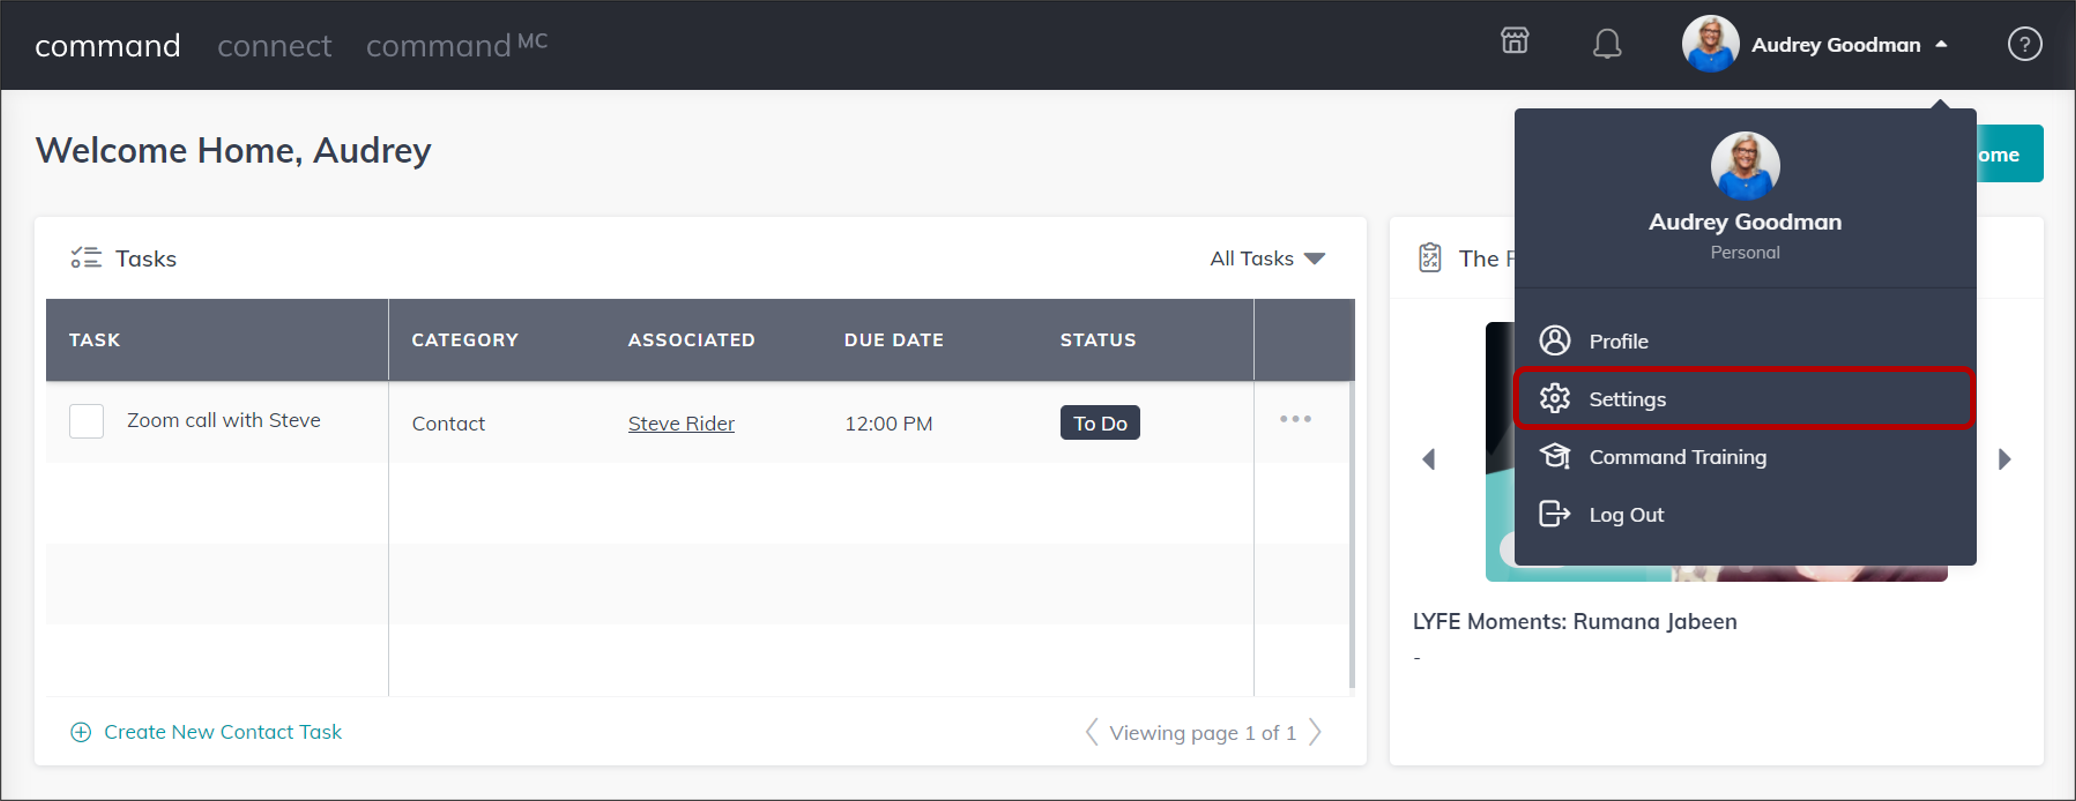 command_mc_click_settings.png